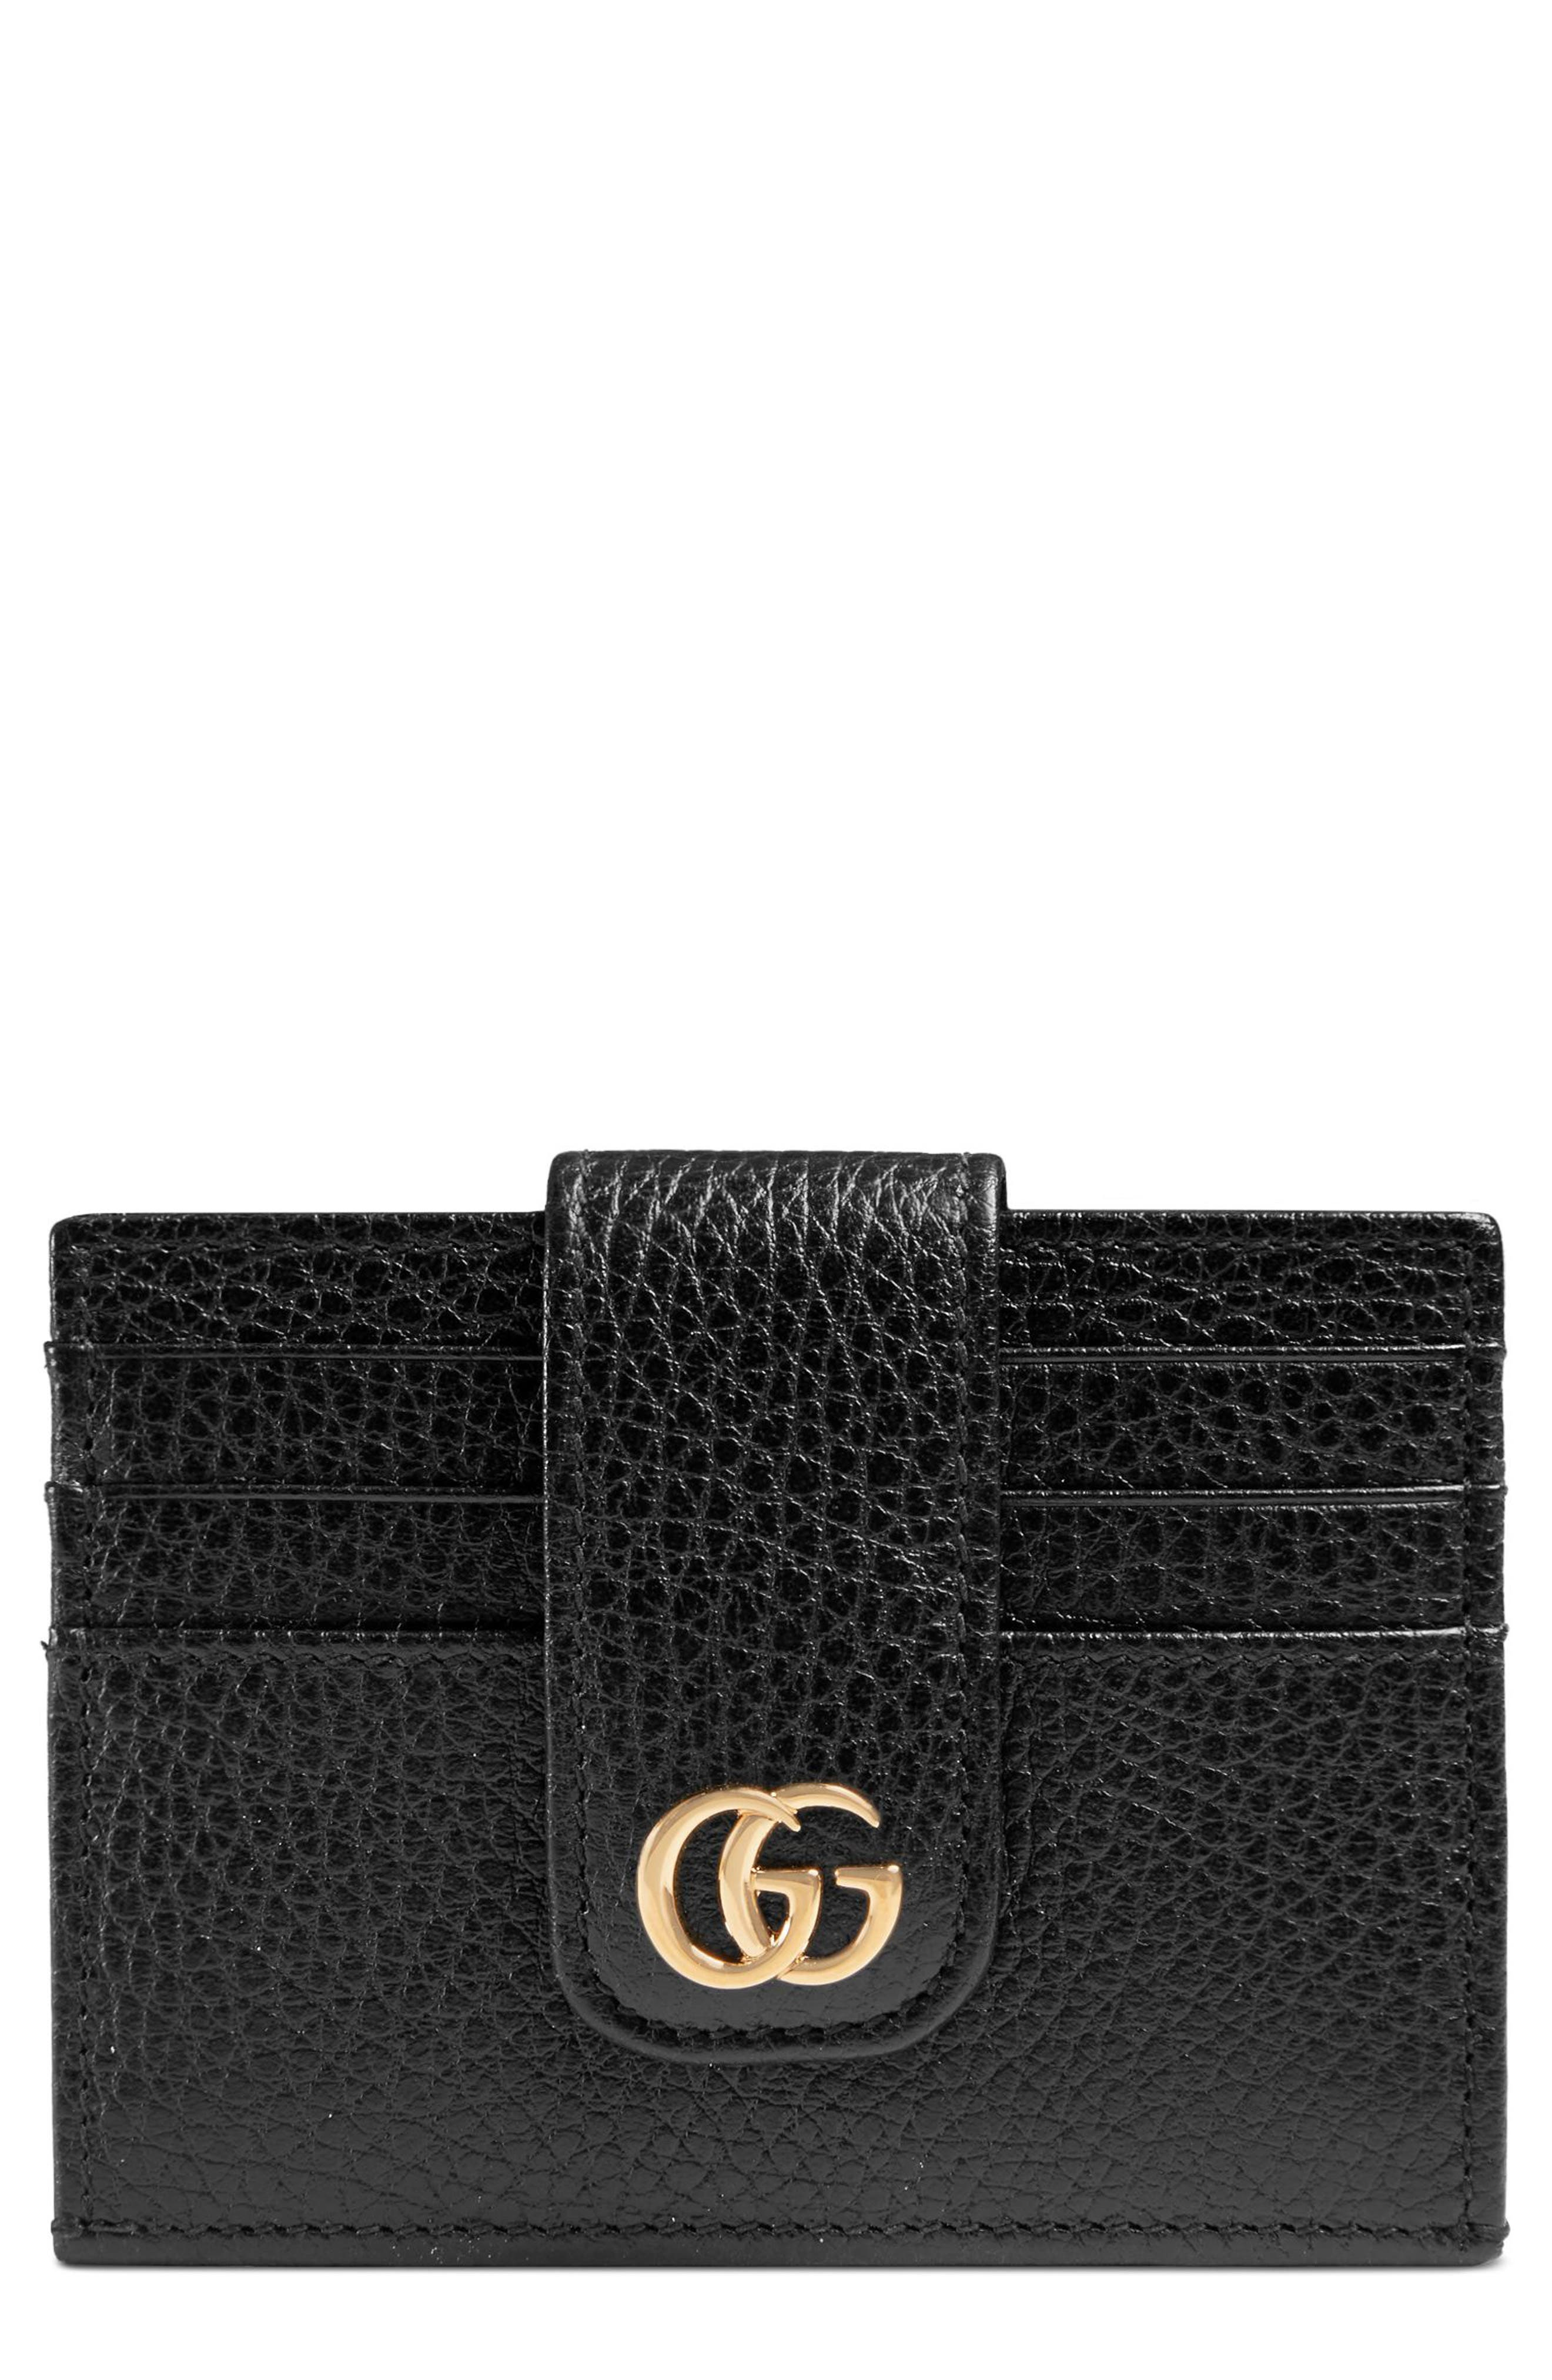 Main Image - Gucci GG Marmont Leather Card Case